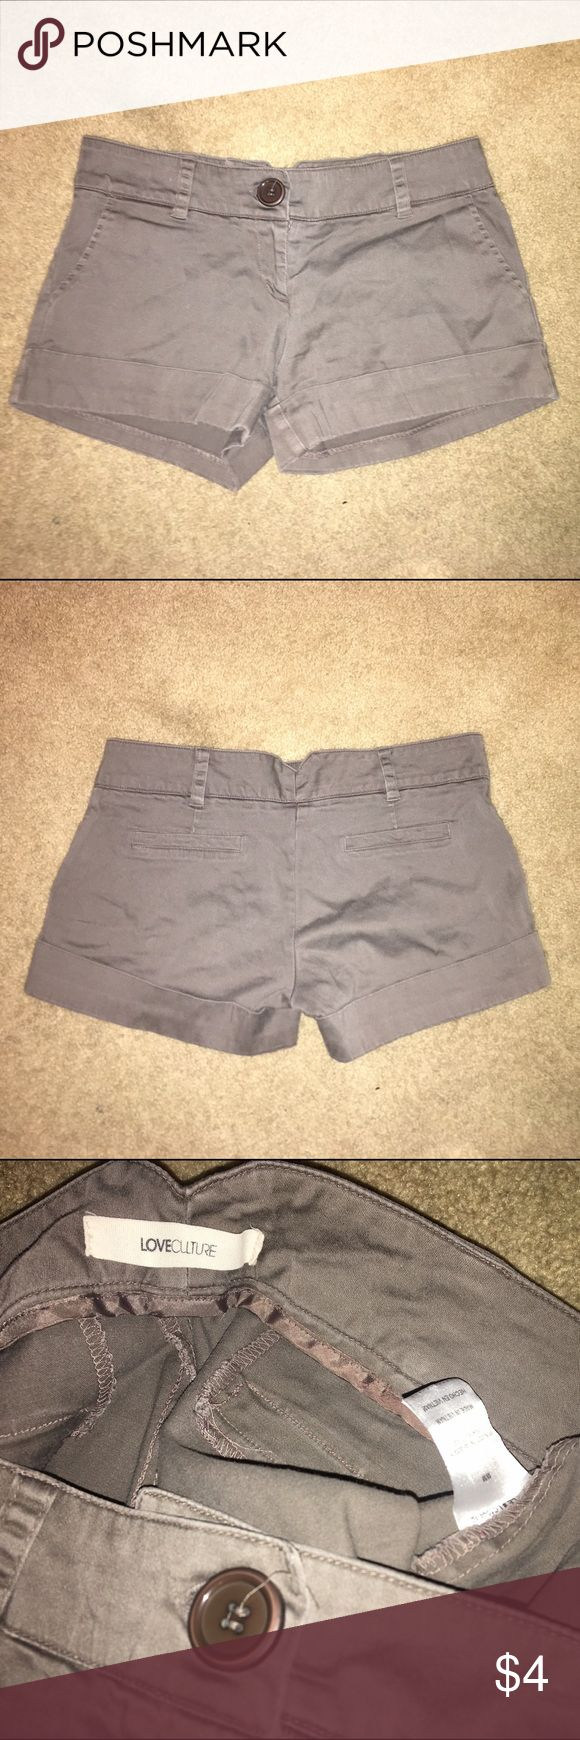 Love culture brown khaki shorts Love culture brown shorts with pockets in front and fake pockets in the back. Shorts are size medium. All clothing final sale. No trade offers please. Open to bundling so don't be shy. Check out my sellers discount! Love Culture Shorts Jean Shorts